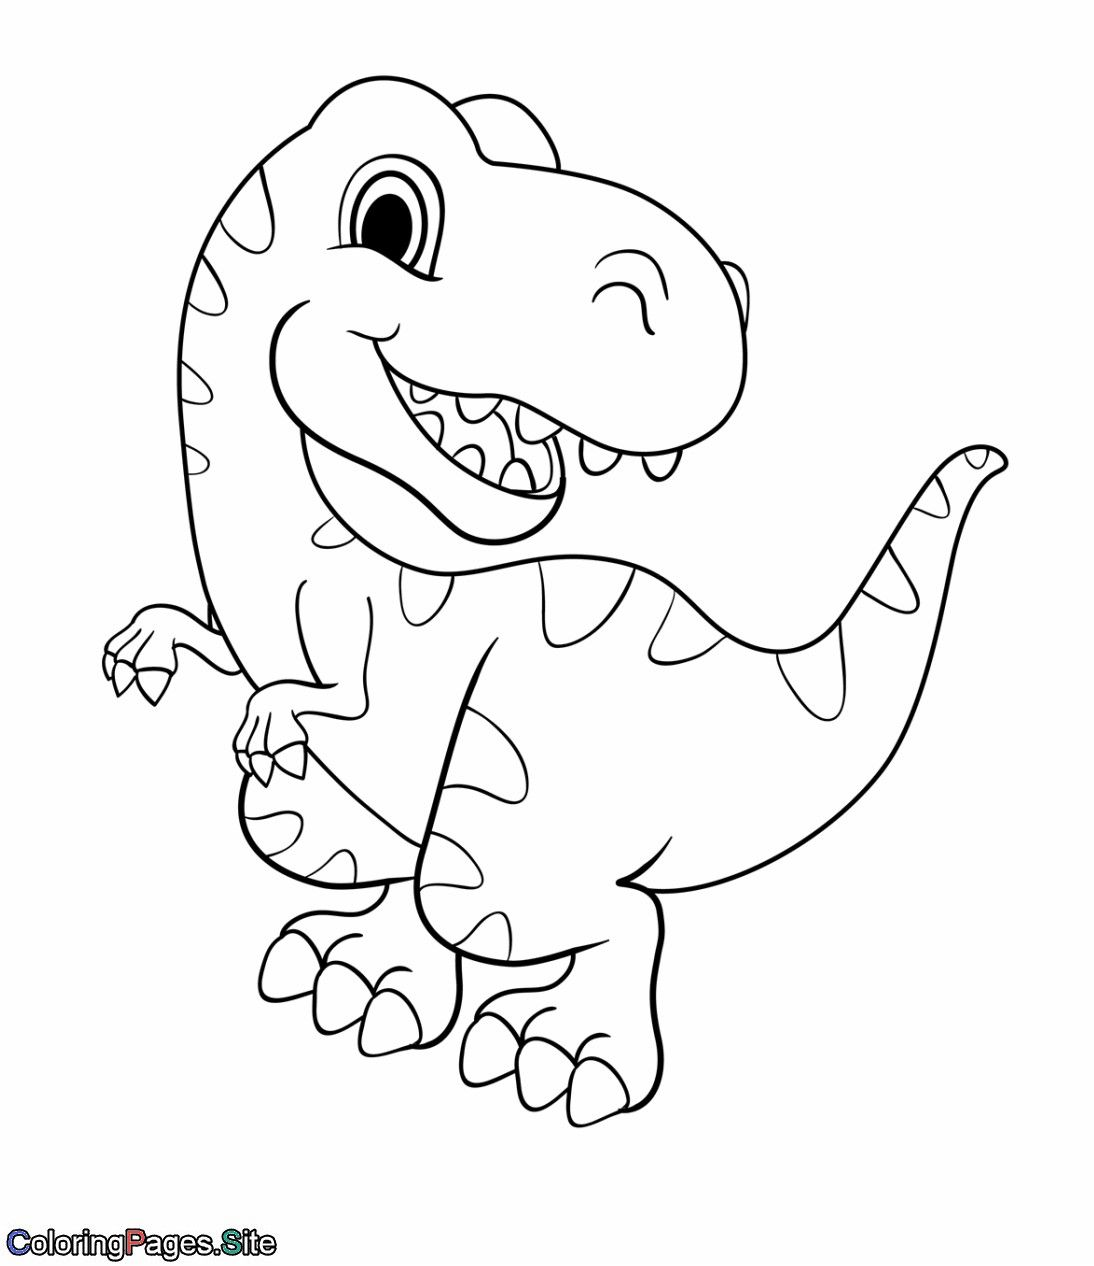 simple dinosaur coloring pages 21 great photo of dinosaur coloring pages pages simple coloring dinosaur